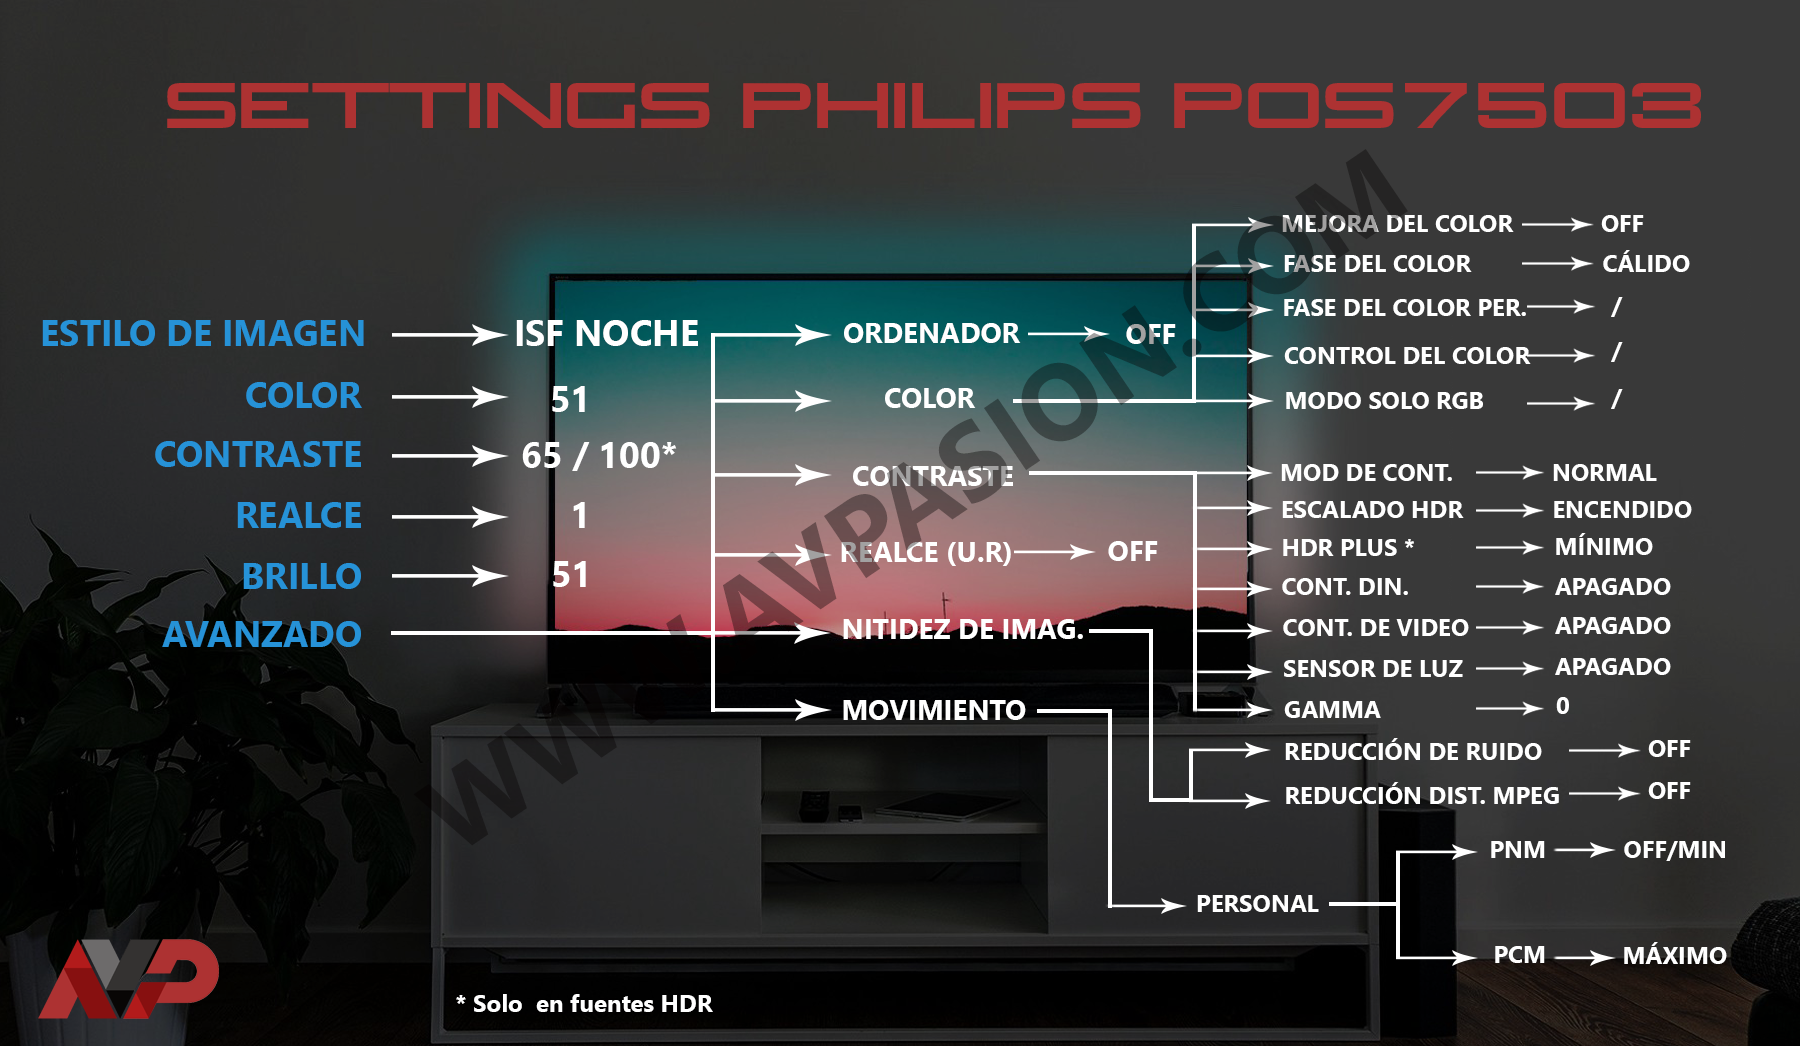 16-PHILIPS-7503.png